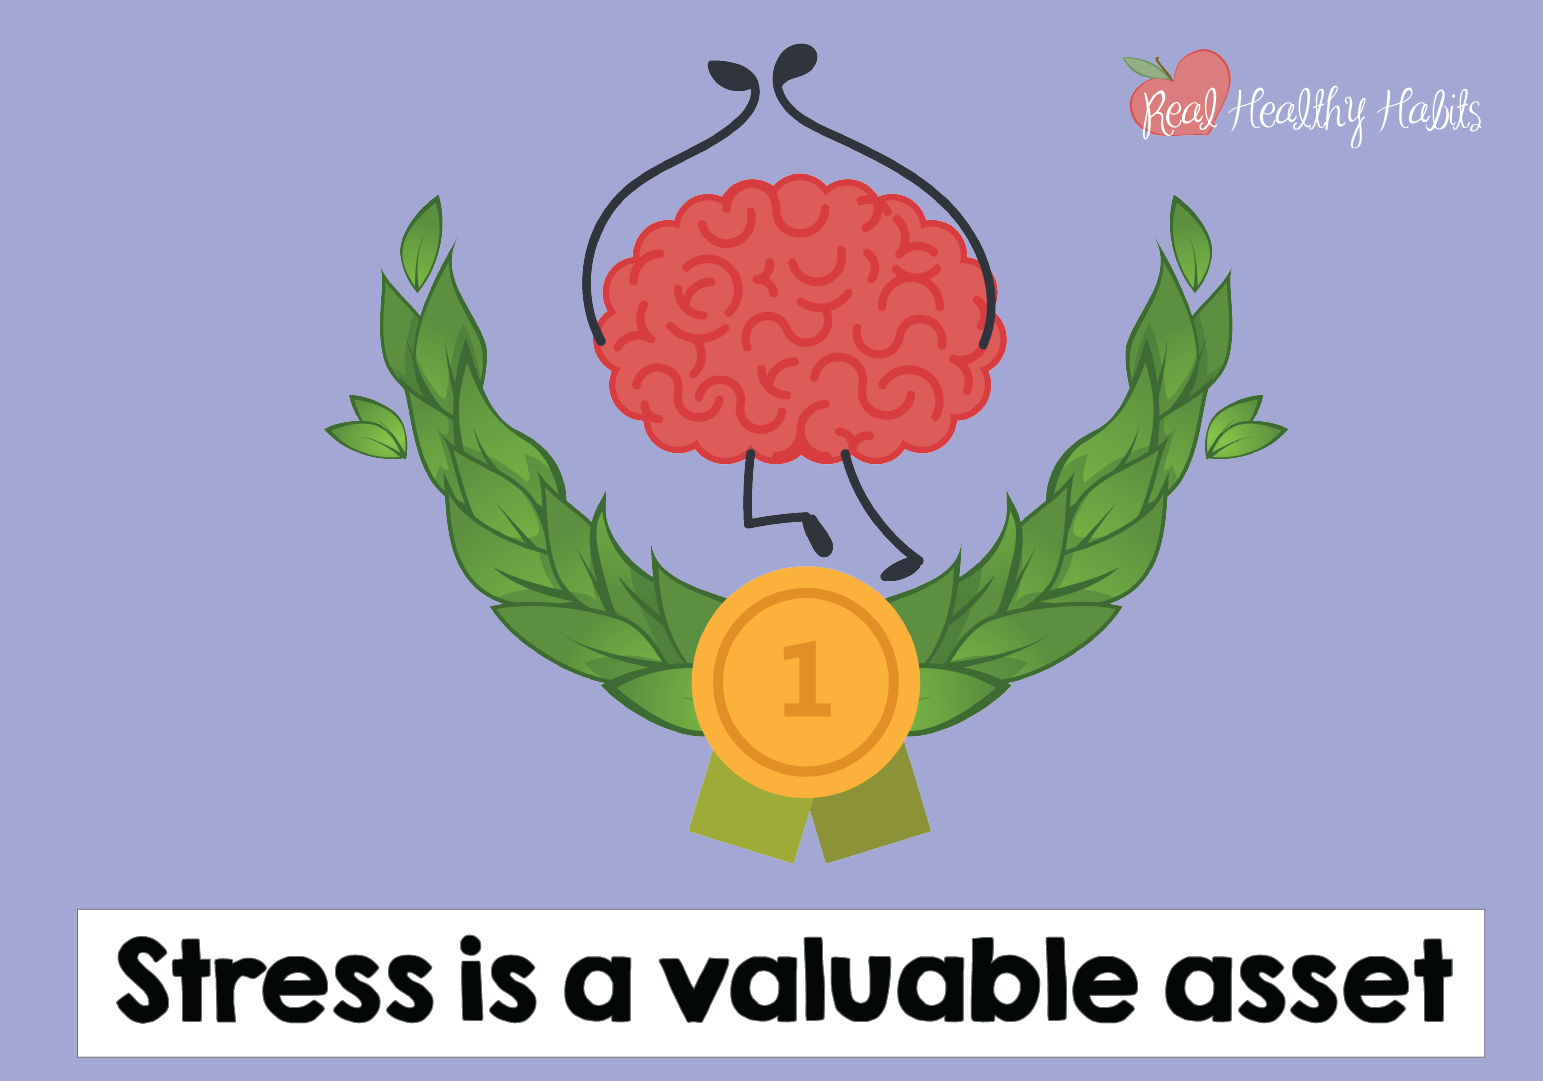 To always get a challenge response to stress, tell your brain that your stress response gives you valuable power and energy.   How to Make Stress Your Superpower: Always Get the Good Kind of Stress   www.realhealthyhabits.com